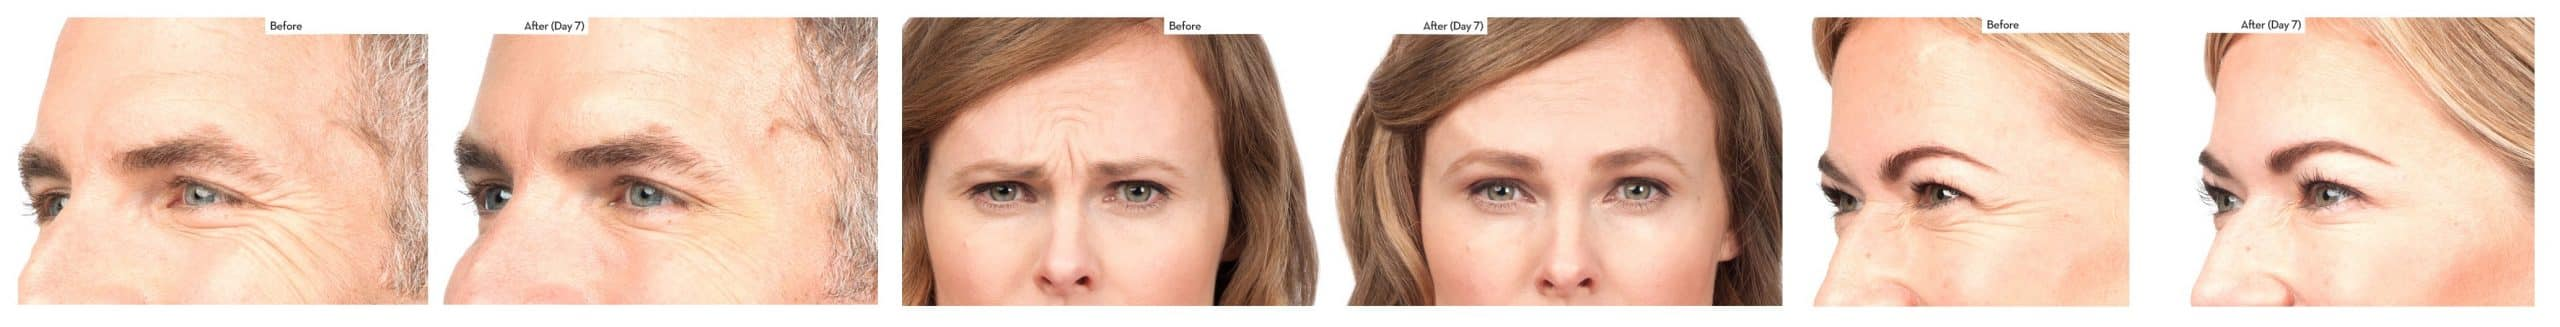 Clinical Before and After Botox | Botox injections by Physician in Ogden Utah | TimeLess Medical Spa